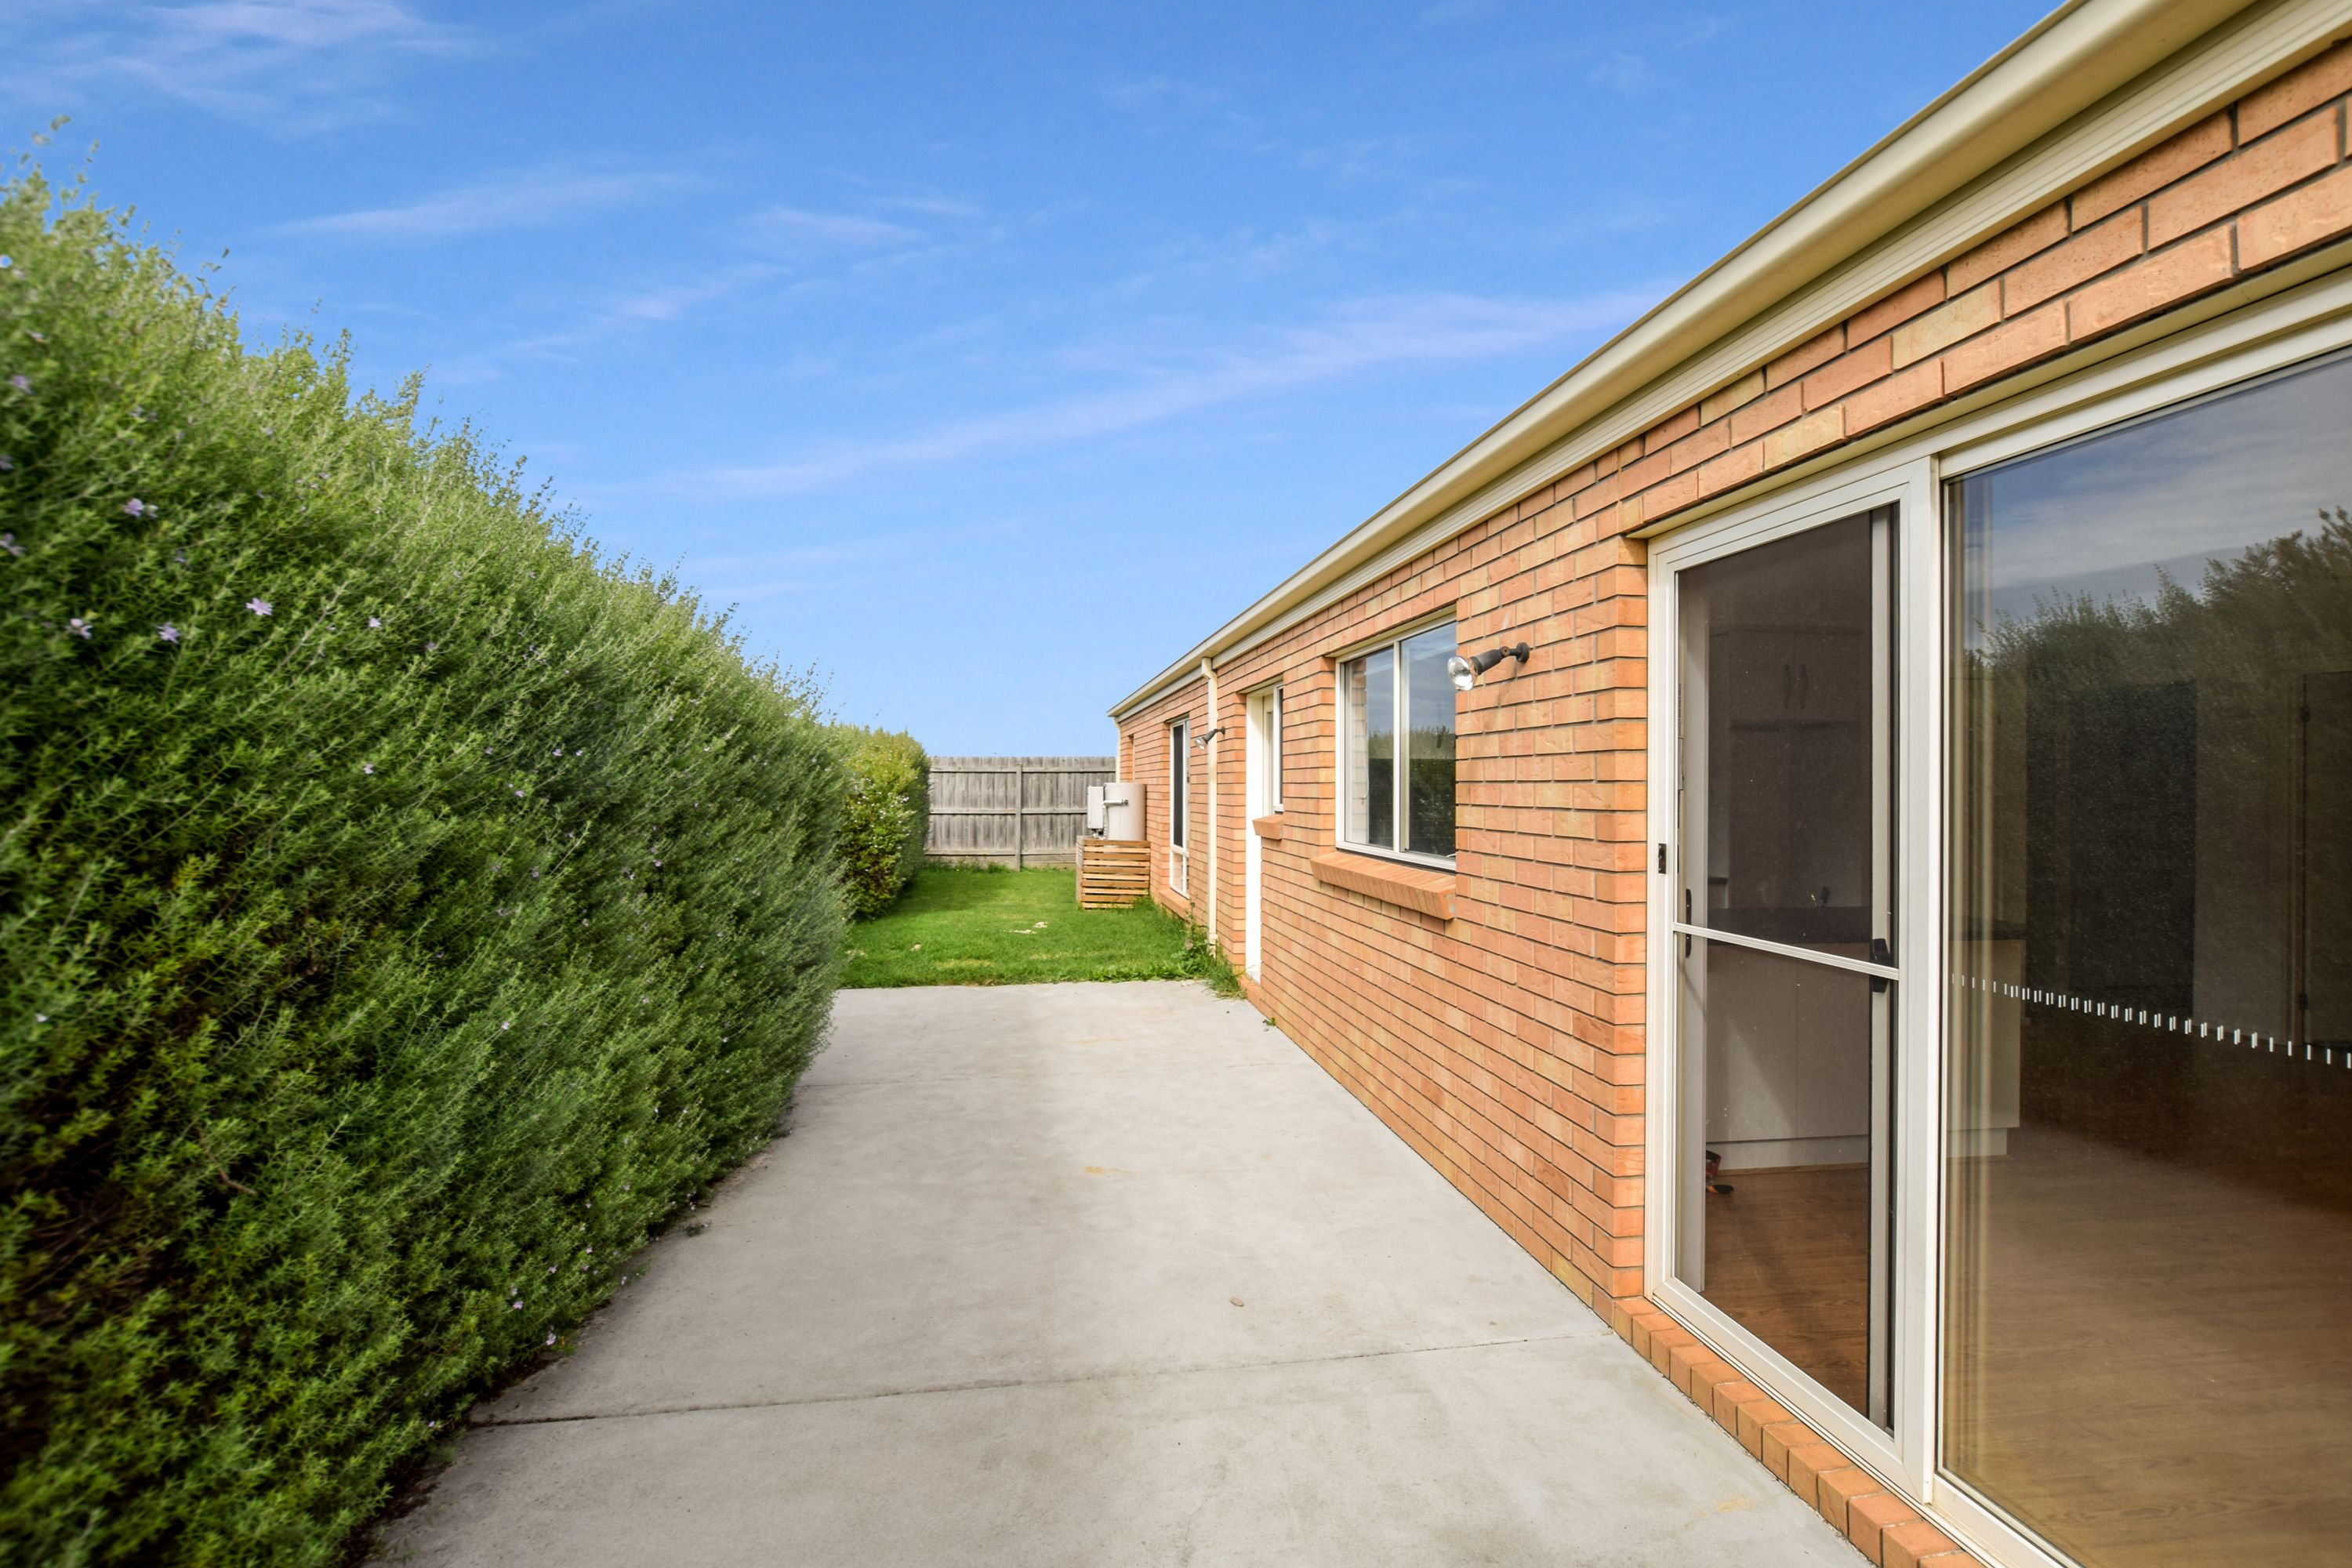 2/31 Heazlewood Road, Warrnambool, VIC 3280